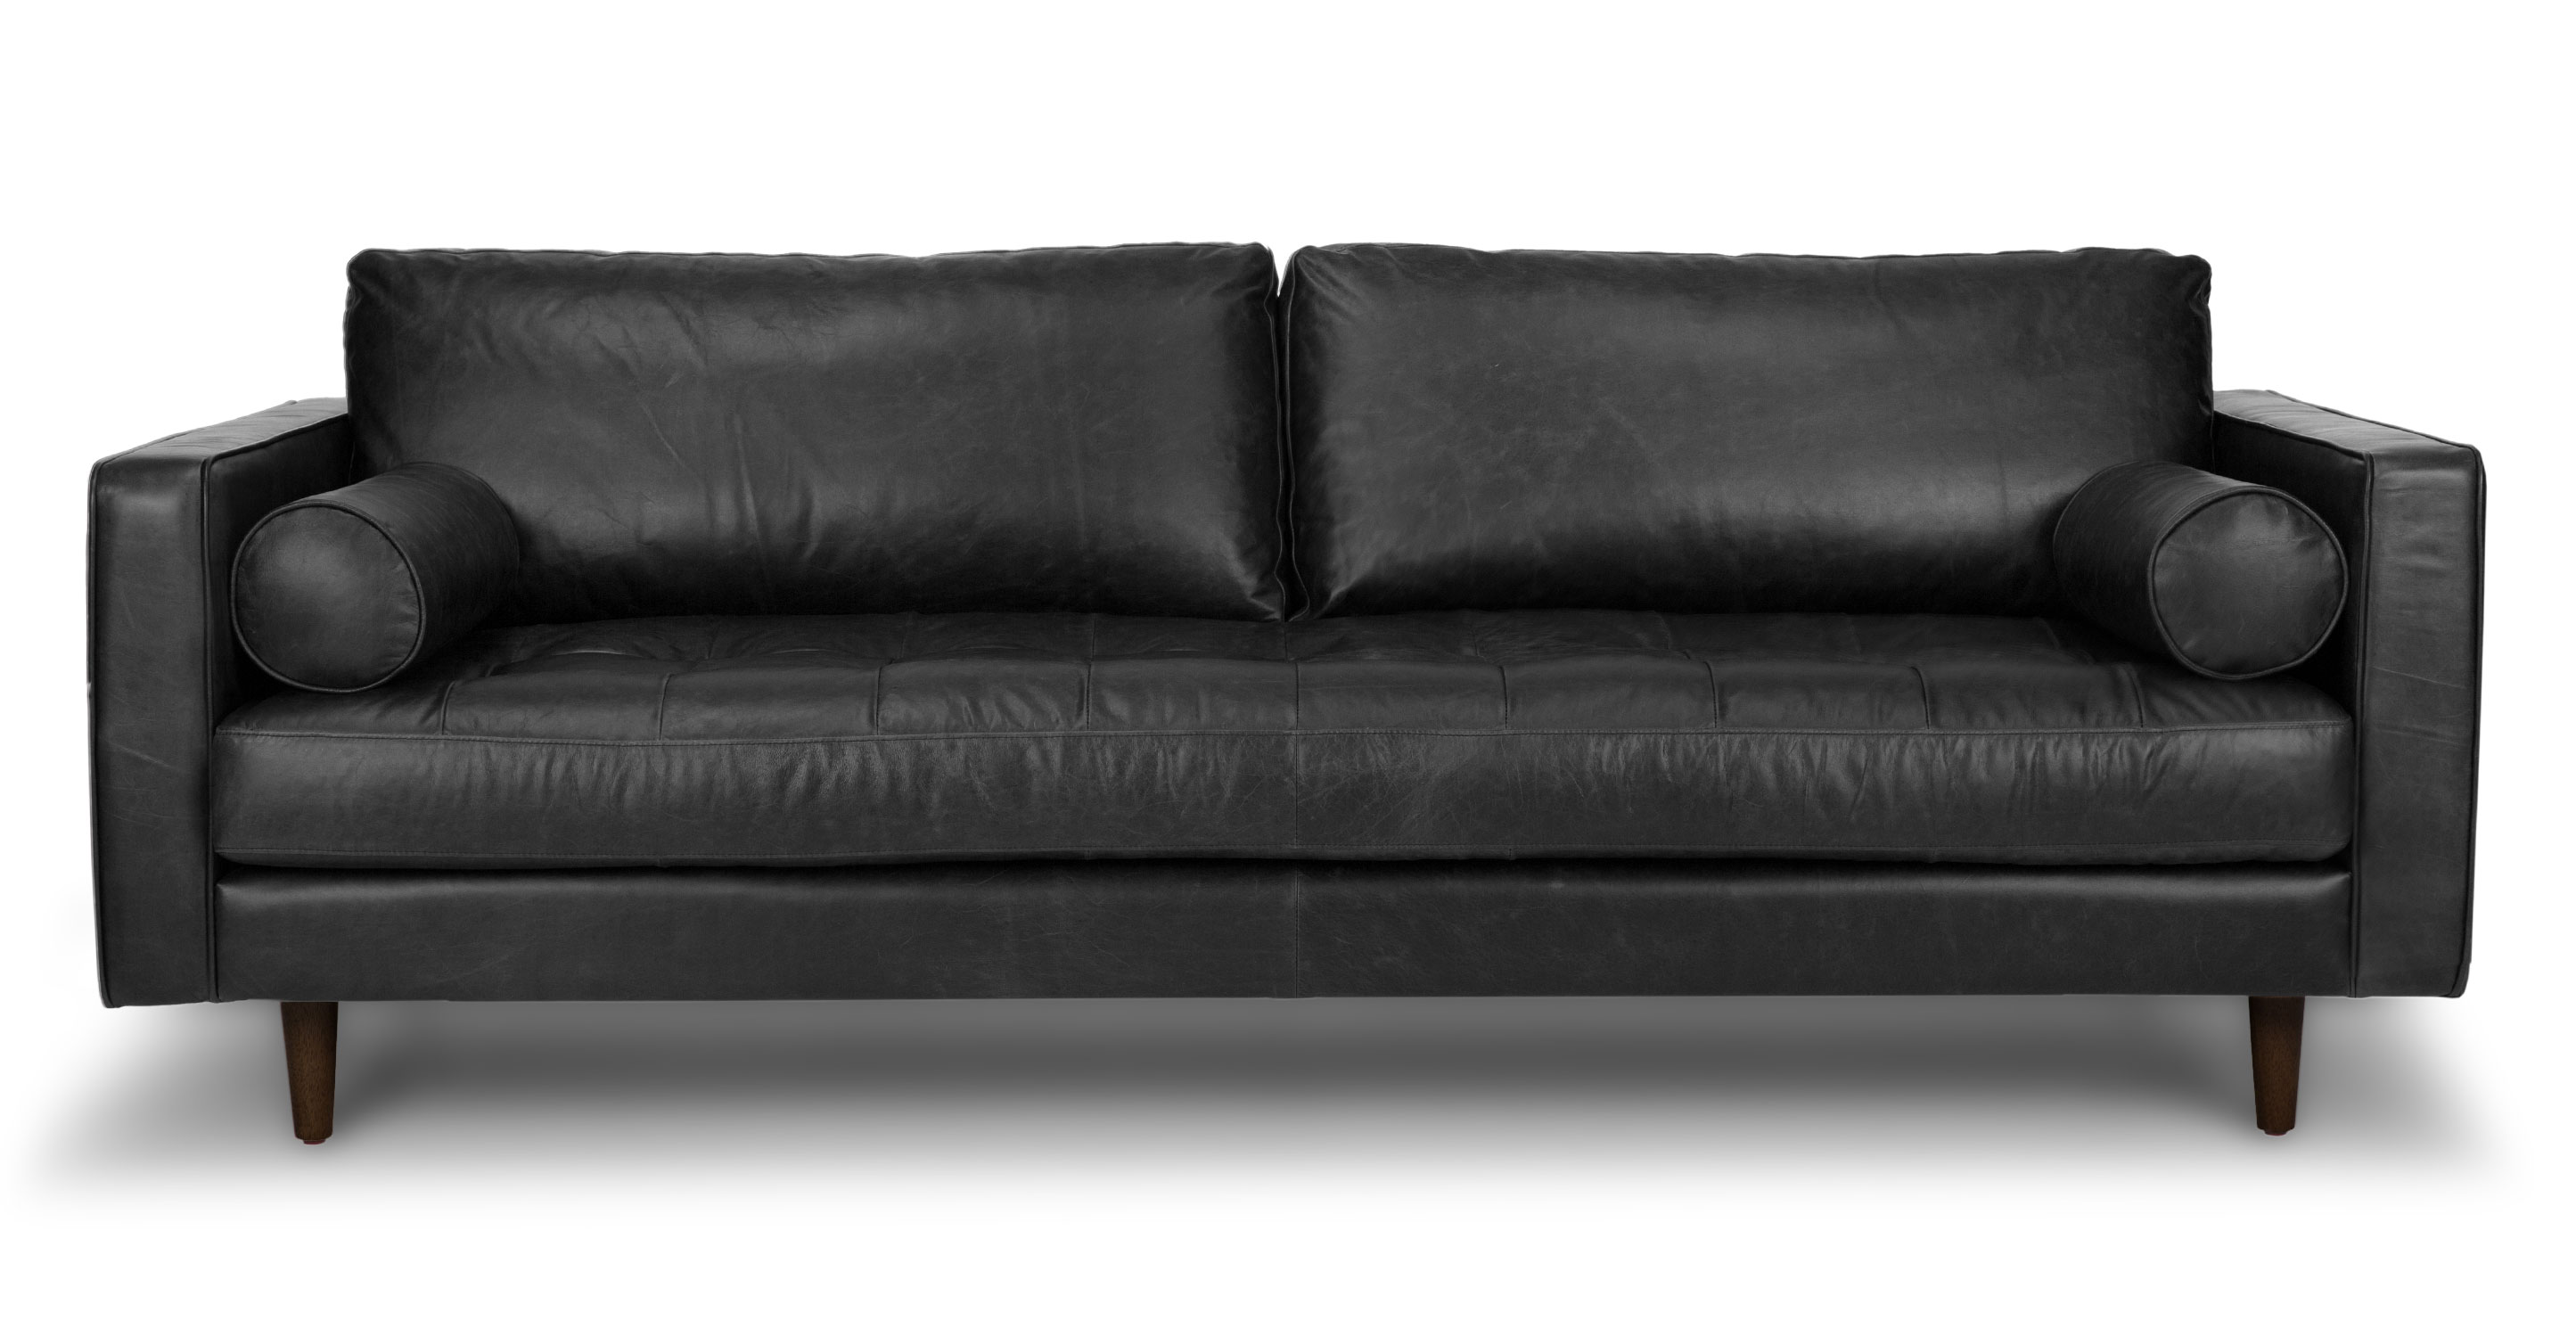 leather sofa sven charme chocolat sofa - sofas - article | modern, mid-century and MWFWGAU